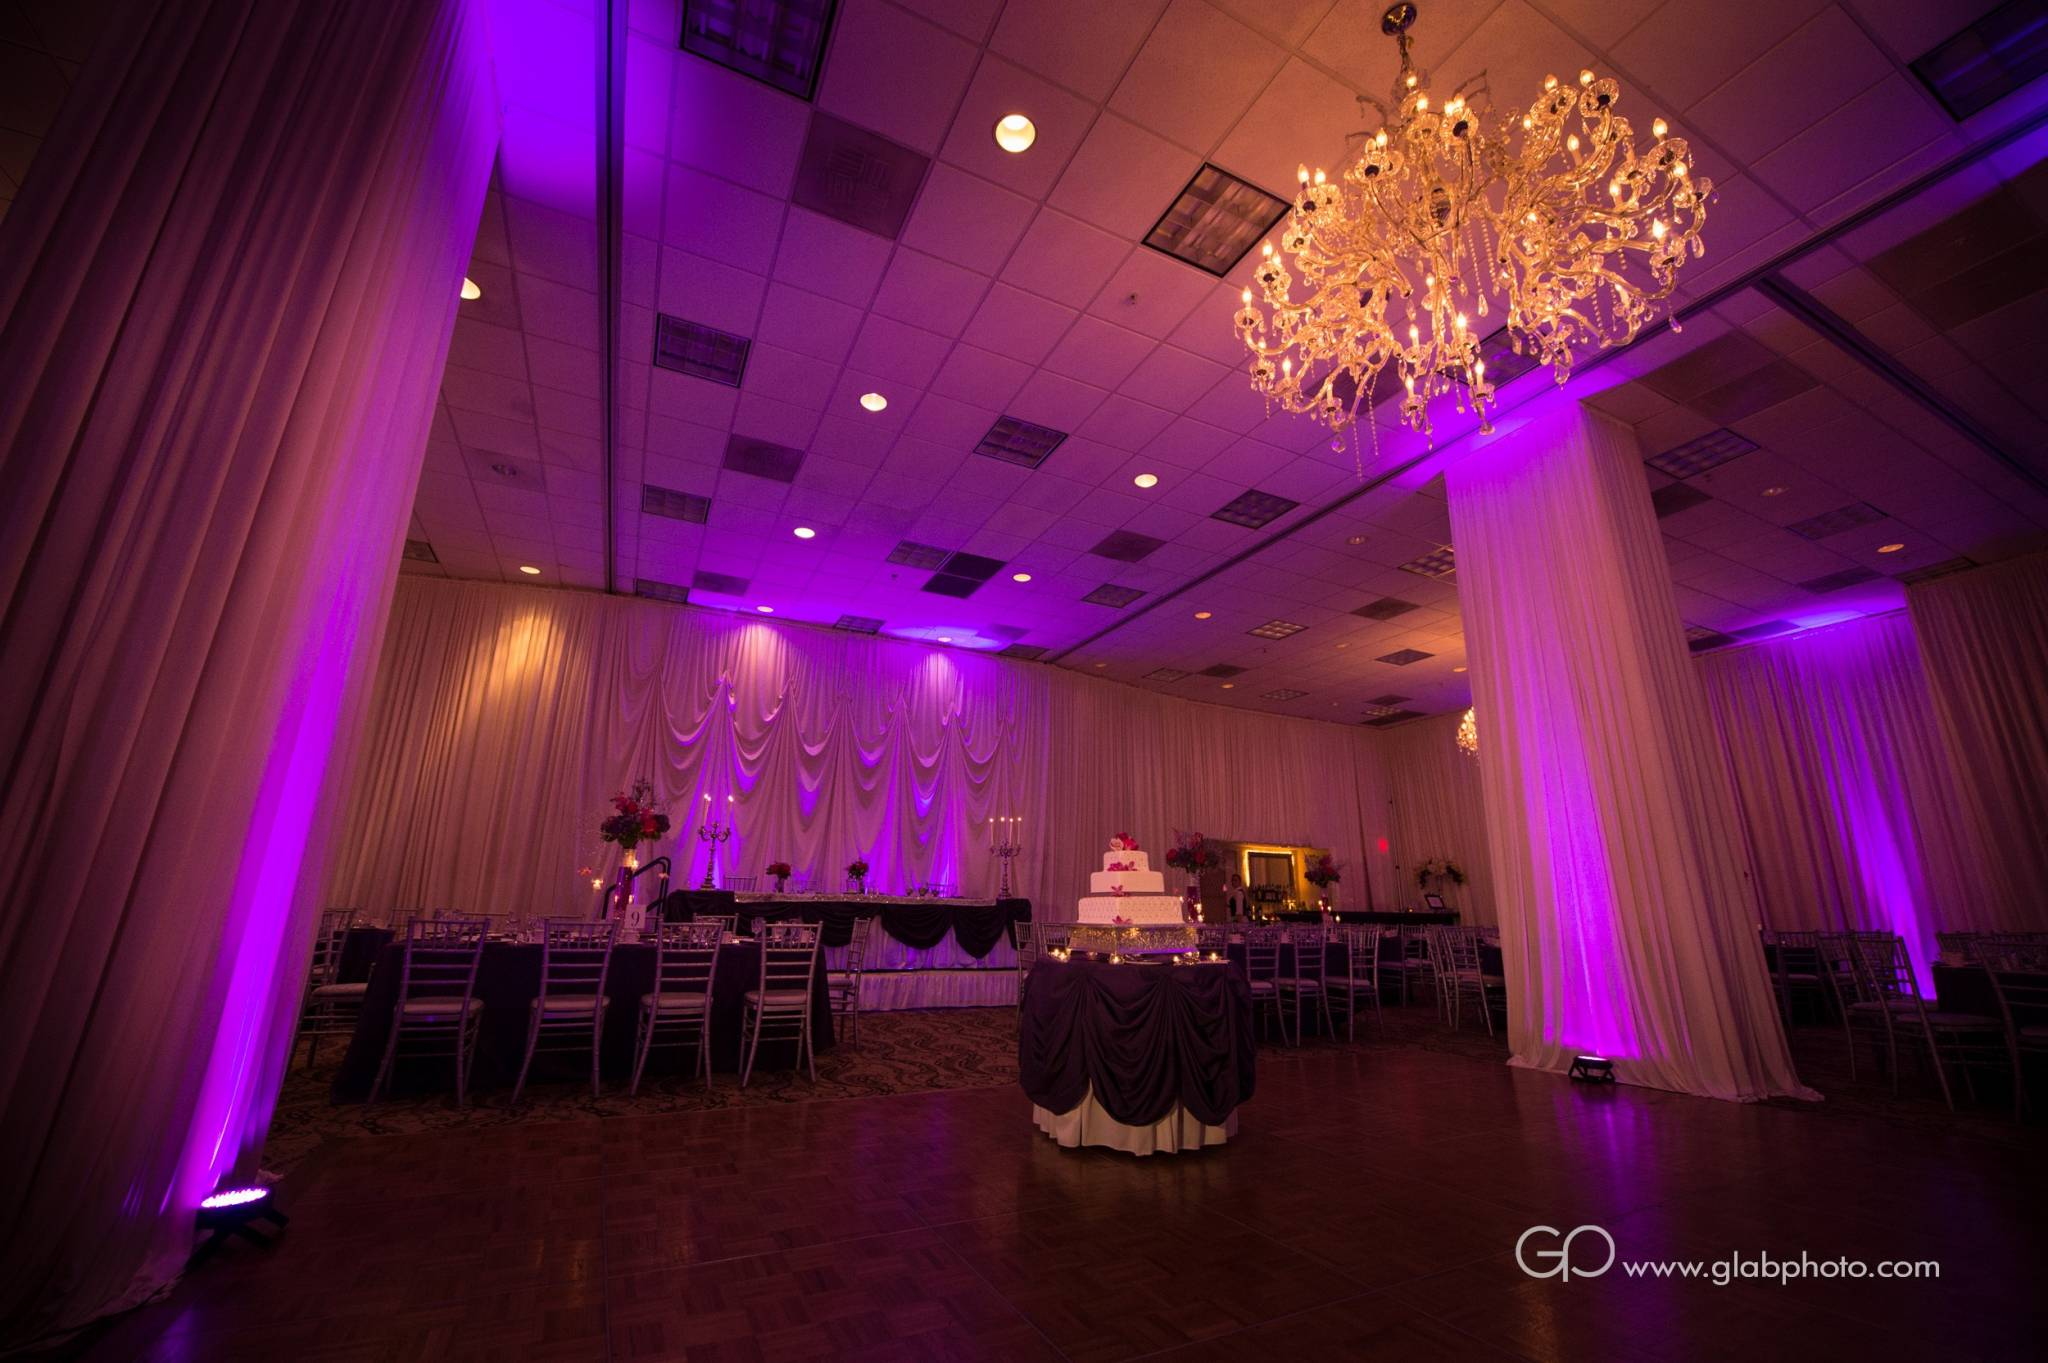 Allegra Banquets & Catering in Schiller Park, Illinois